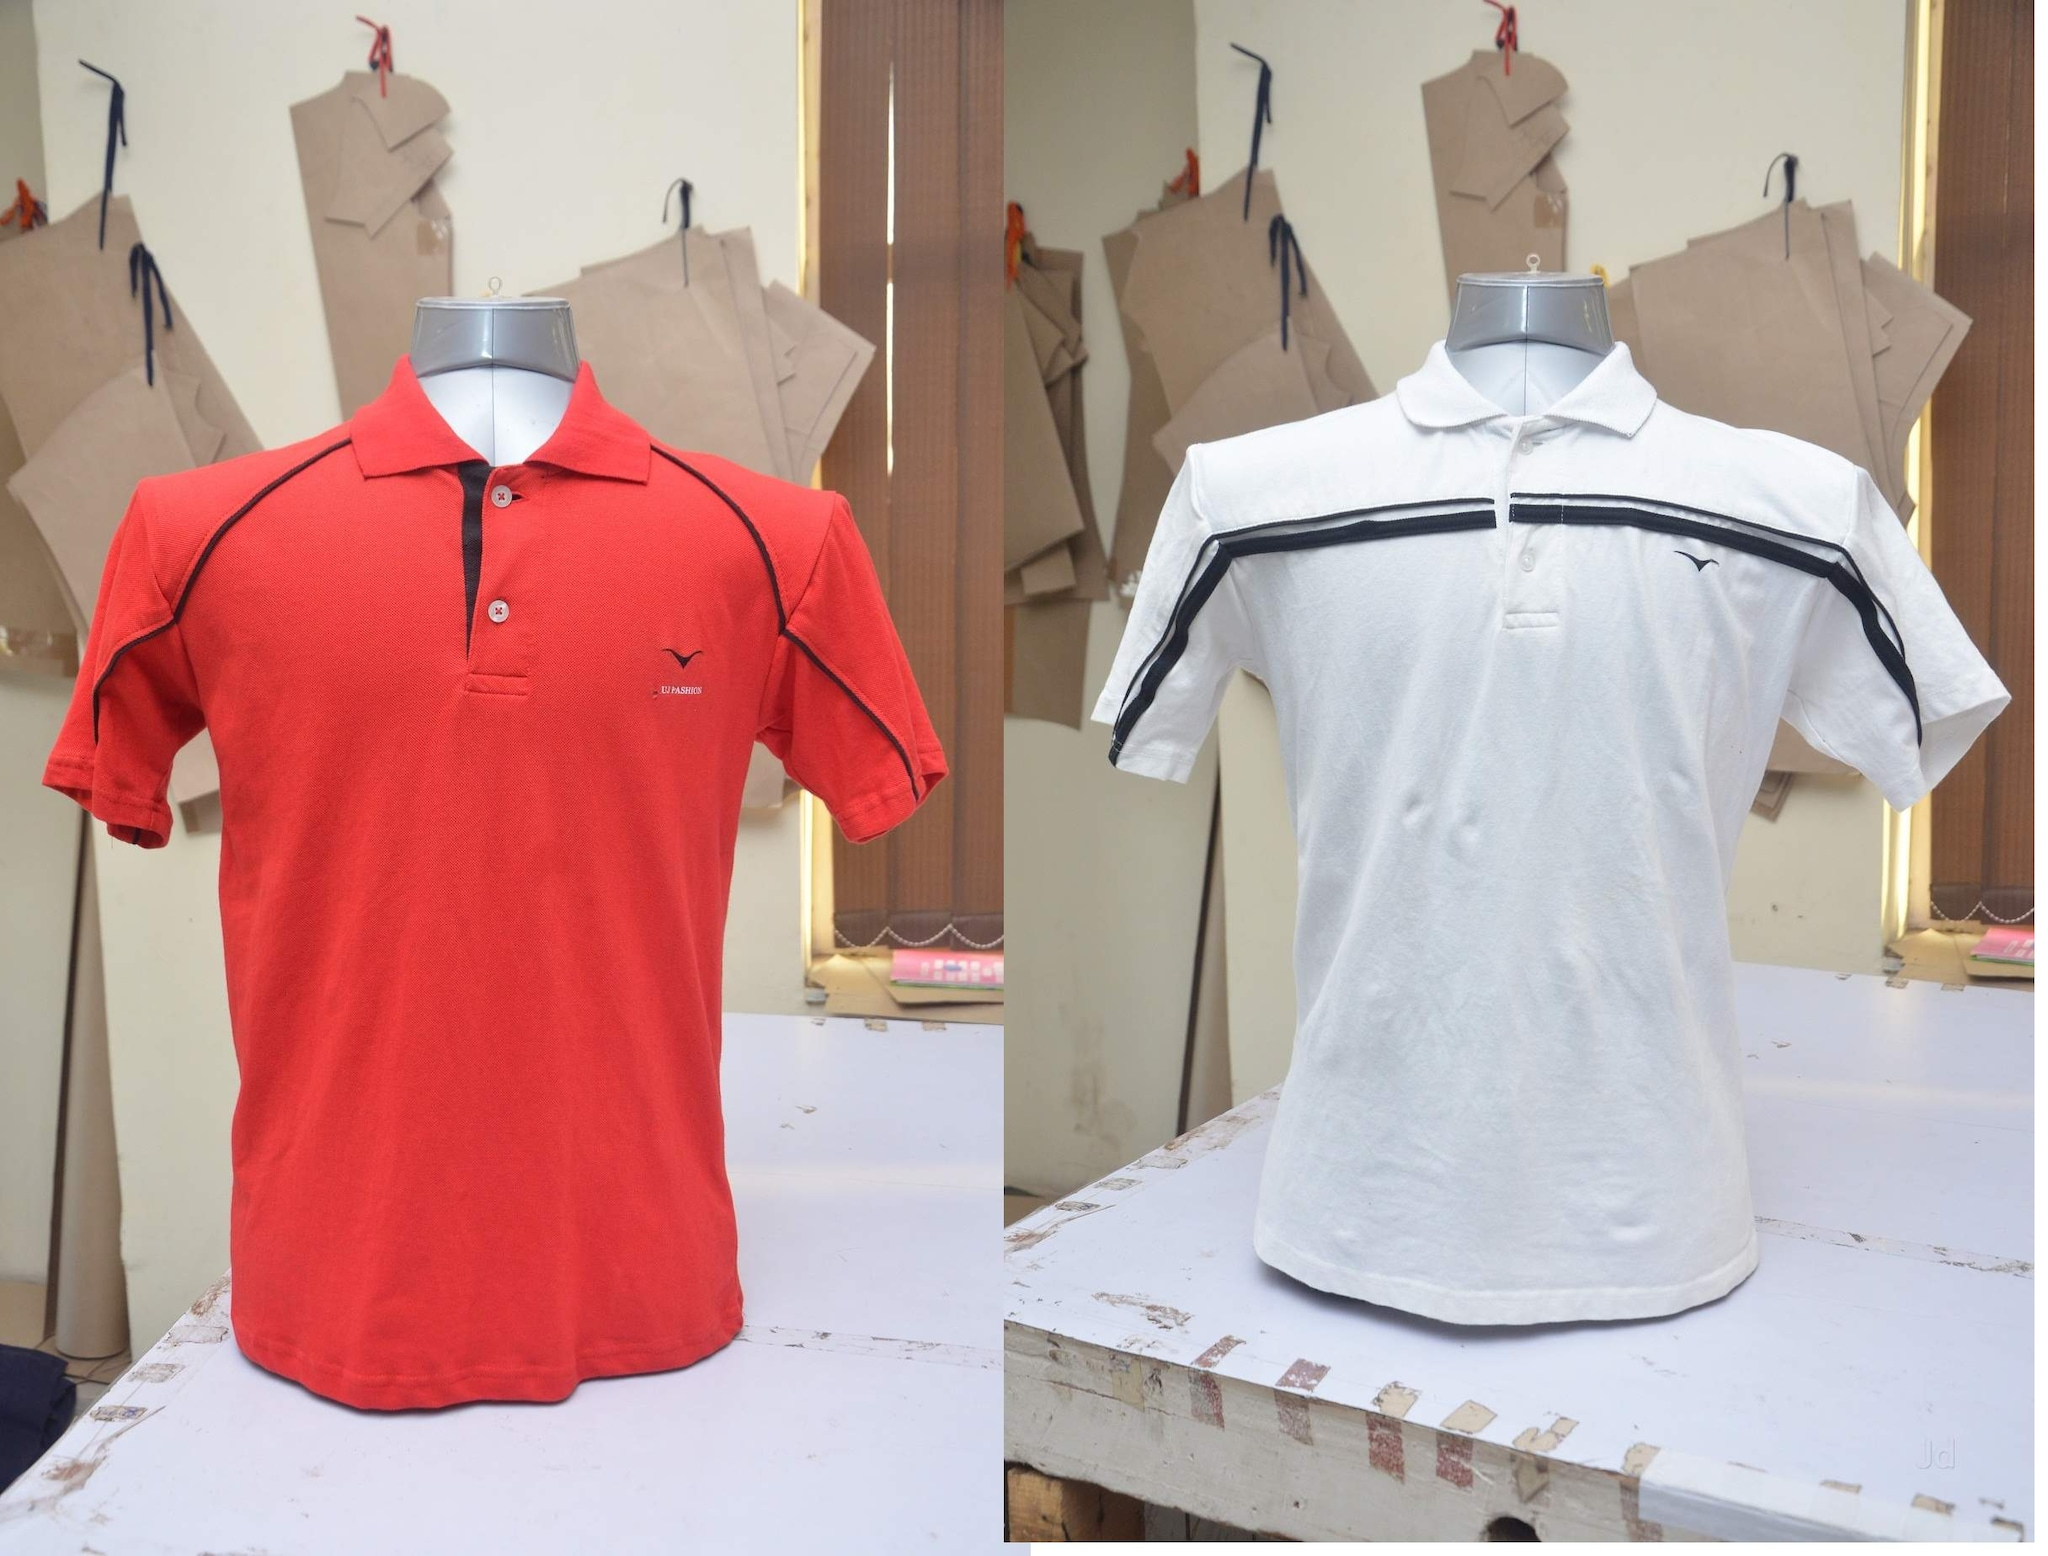 62be973fbbe2 Top 100 T Shirts Manufacturer in Noida Sector 63, Delhi - Best ...